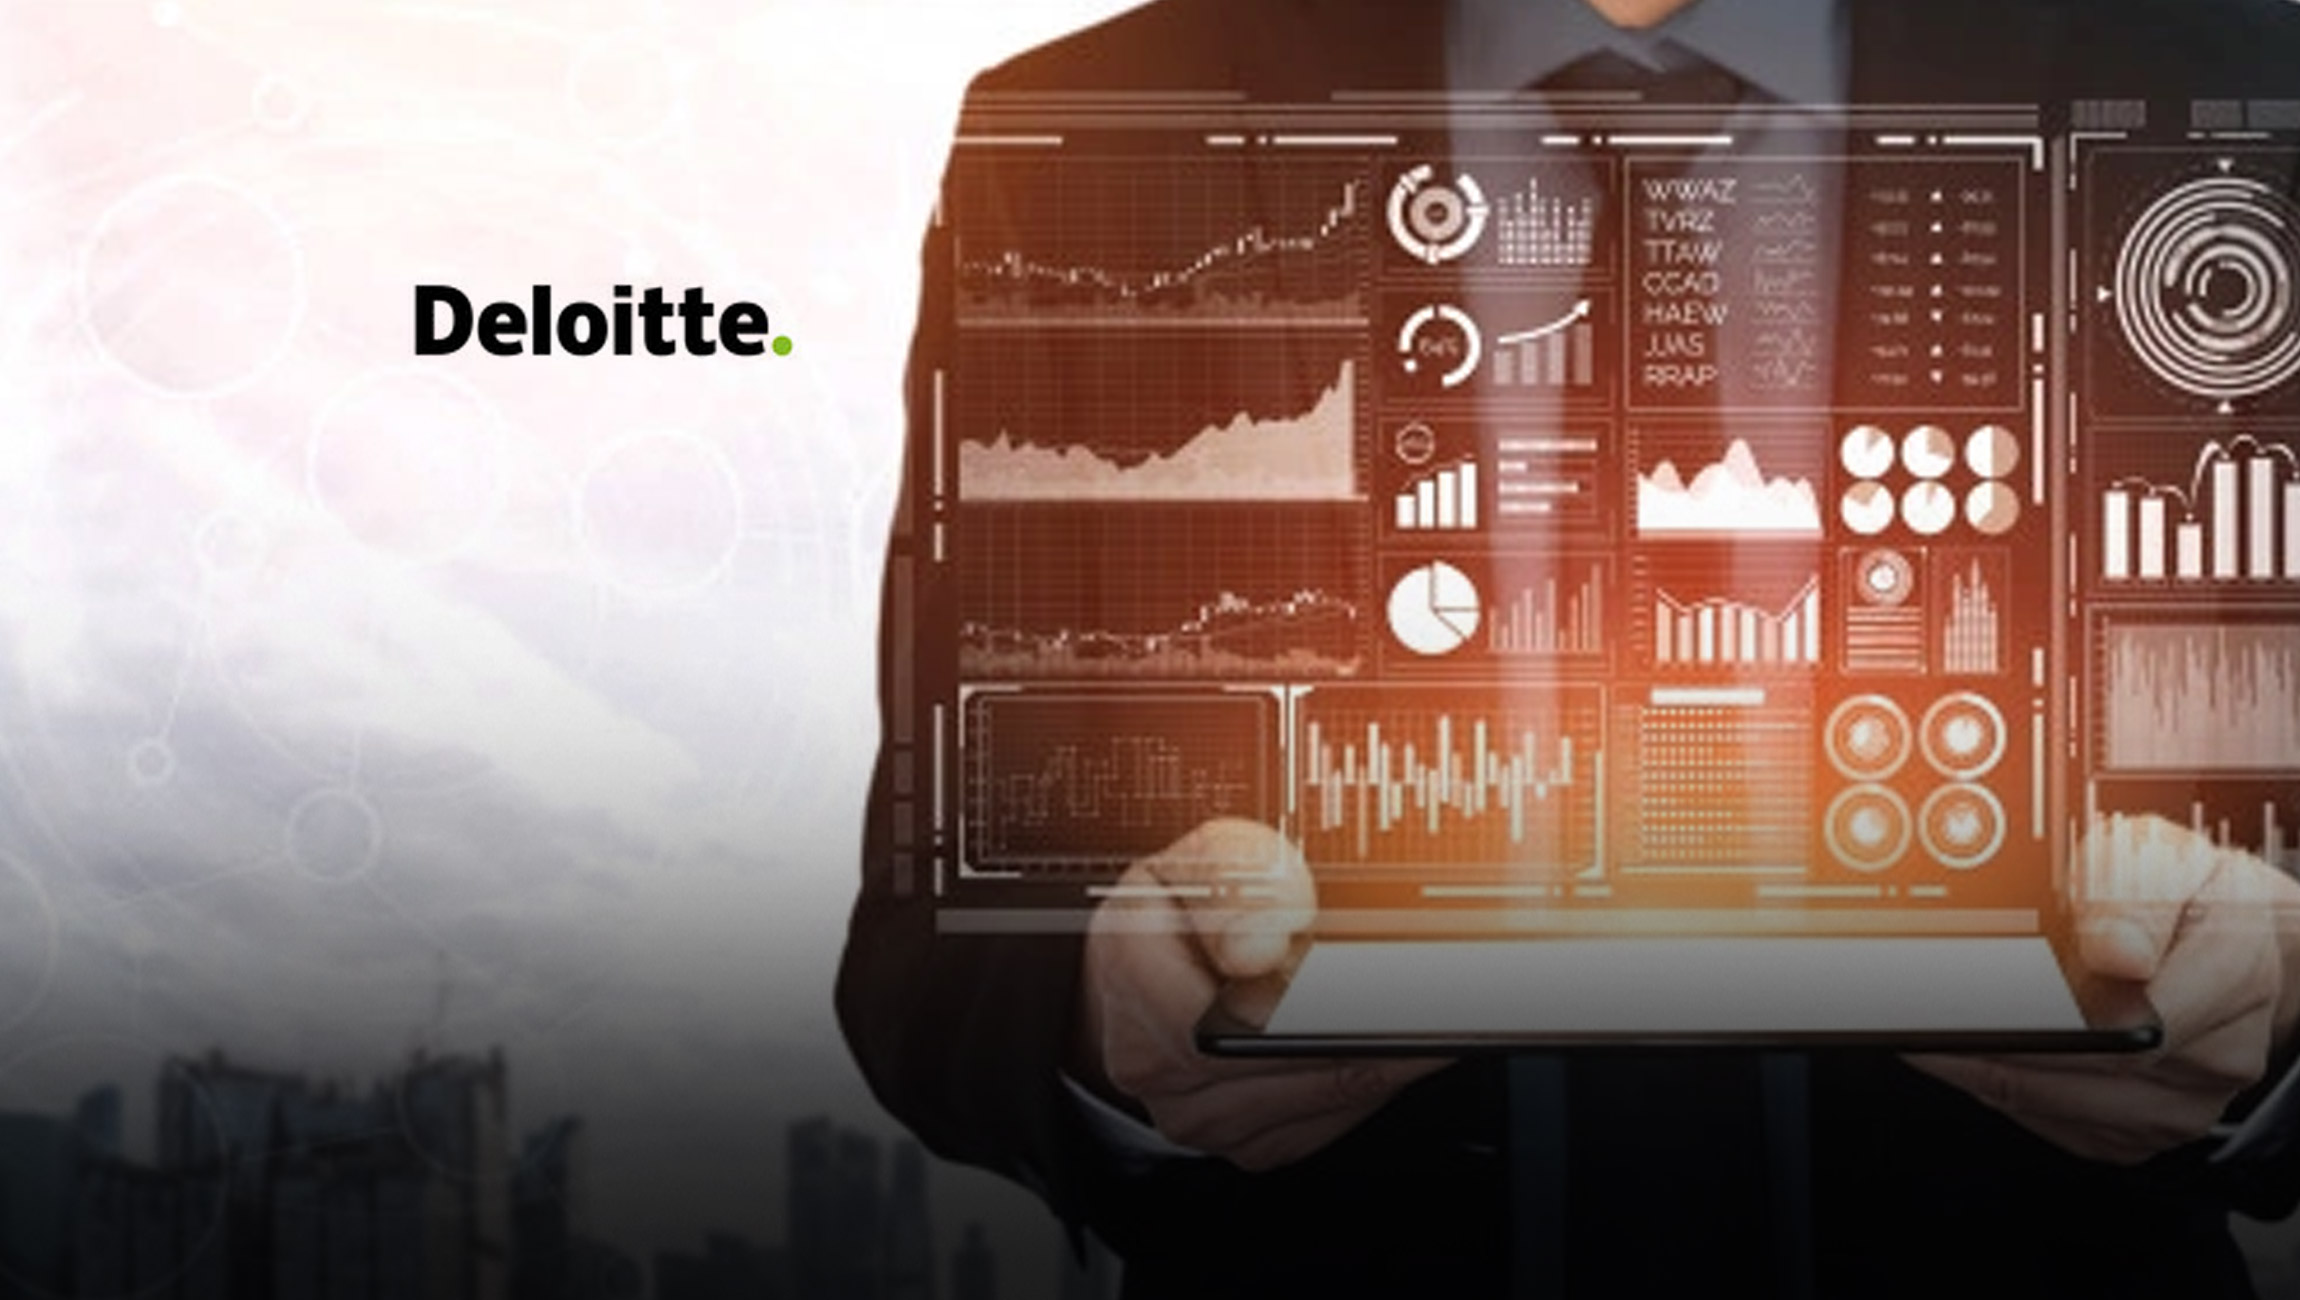 Amidst a Year of Disruption, Deloitte's 12th Annual Tech Trends Report Finds That Enterprises Have Adapted to Fluctuations, Accelerated Digital Transformation, and Emerged Resilient